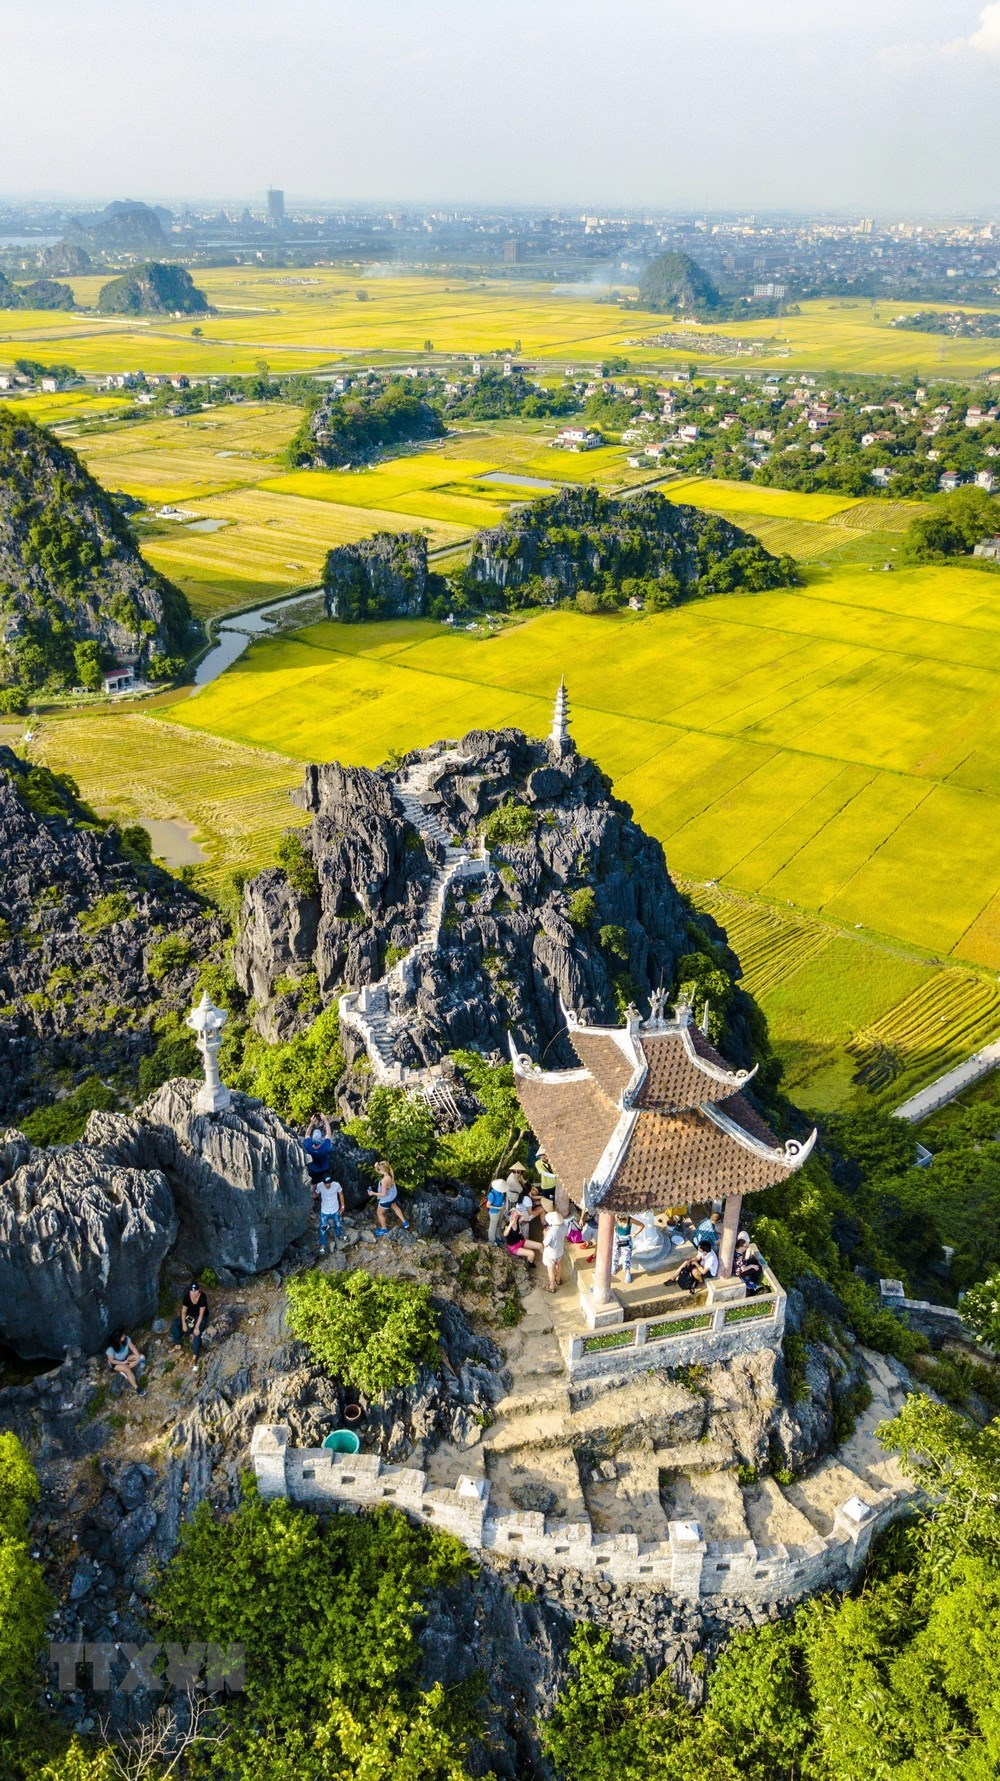 Golden ripe paddy fields looking from Hang Mua peak, travel news, Vietnam guide, Vietnam airlines, Vietnam tour, tour Vietnam, Hanoi, ho chi minh city, Saigon, travelling to Vietnam, Vietnam travelling, Vietnam travel, vn news